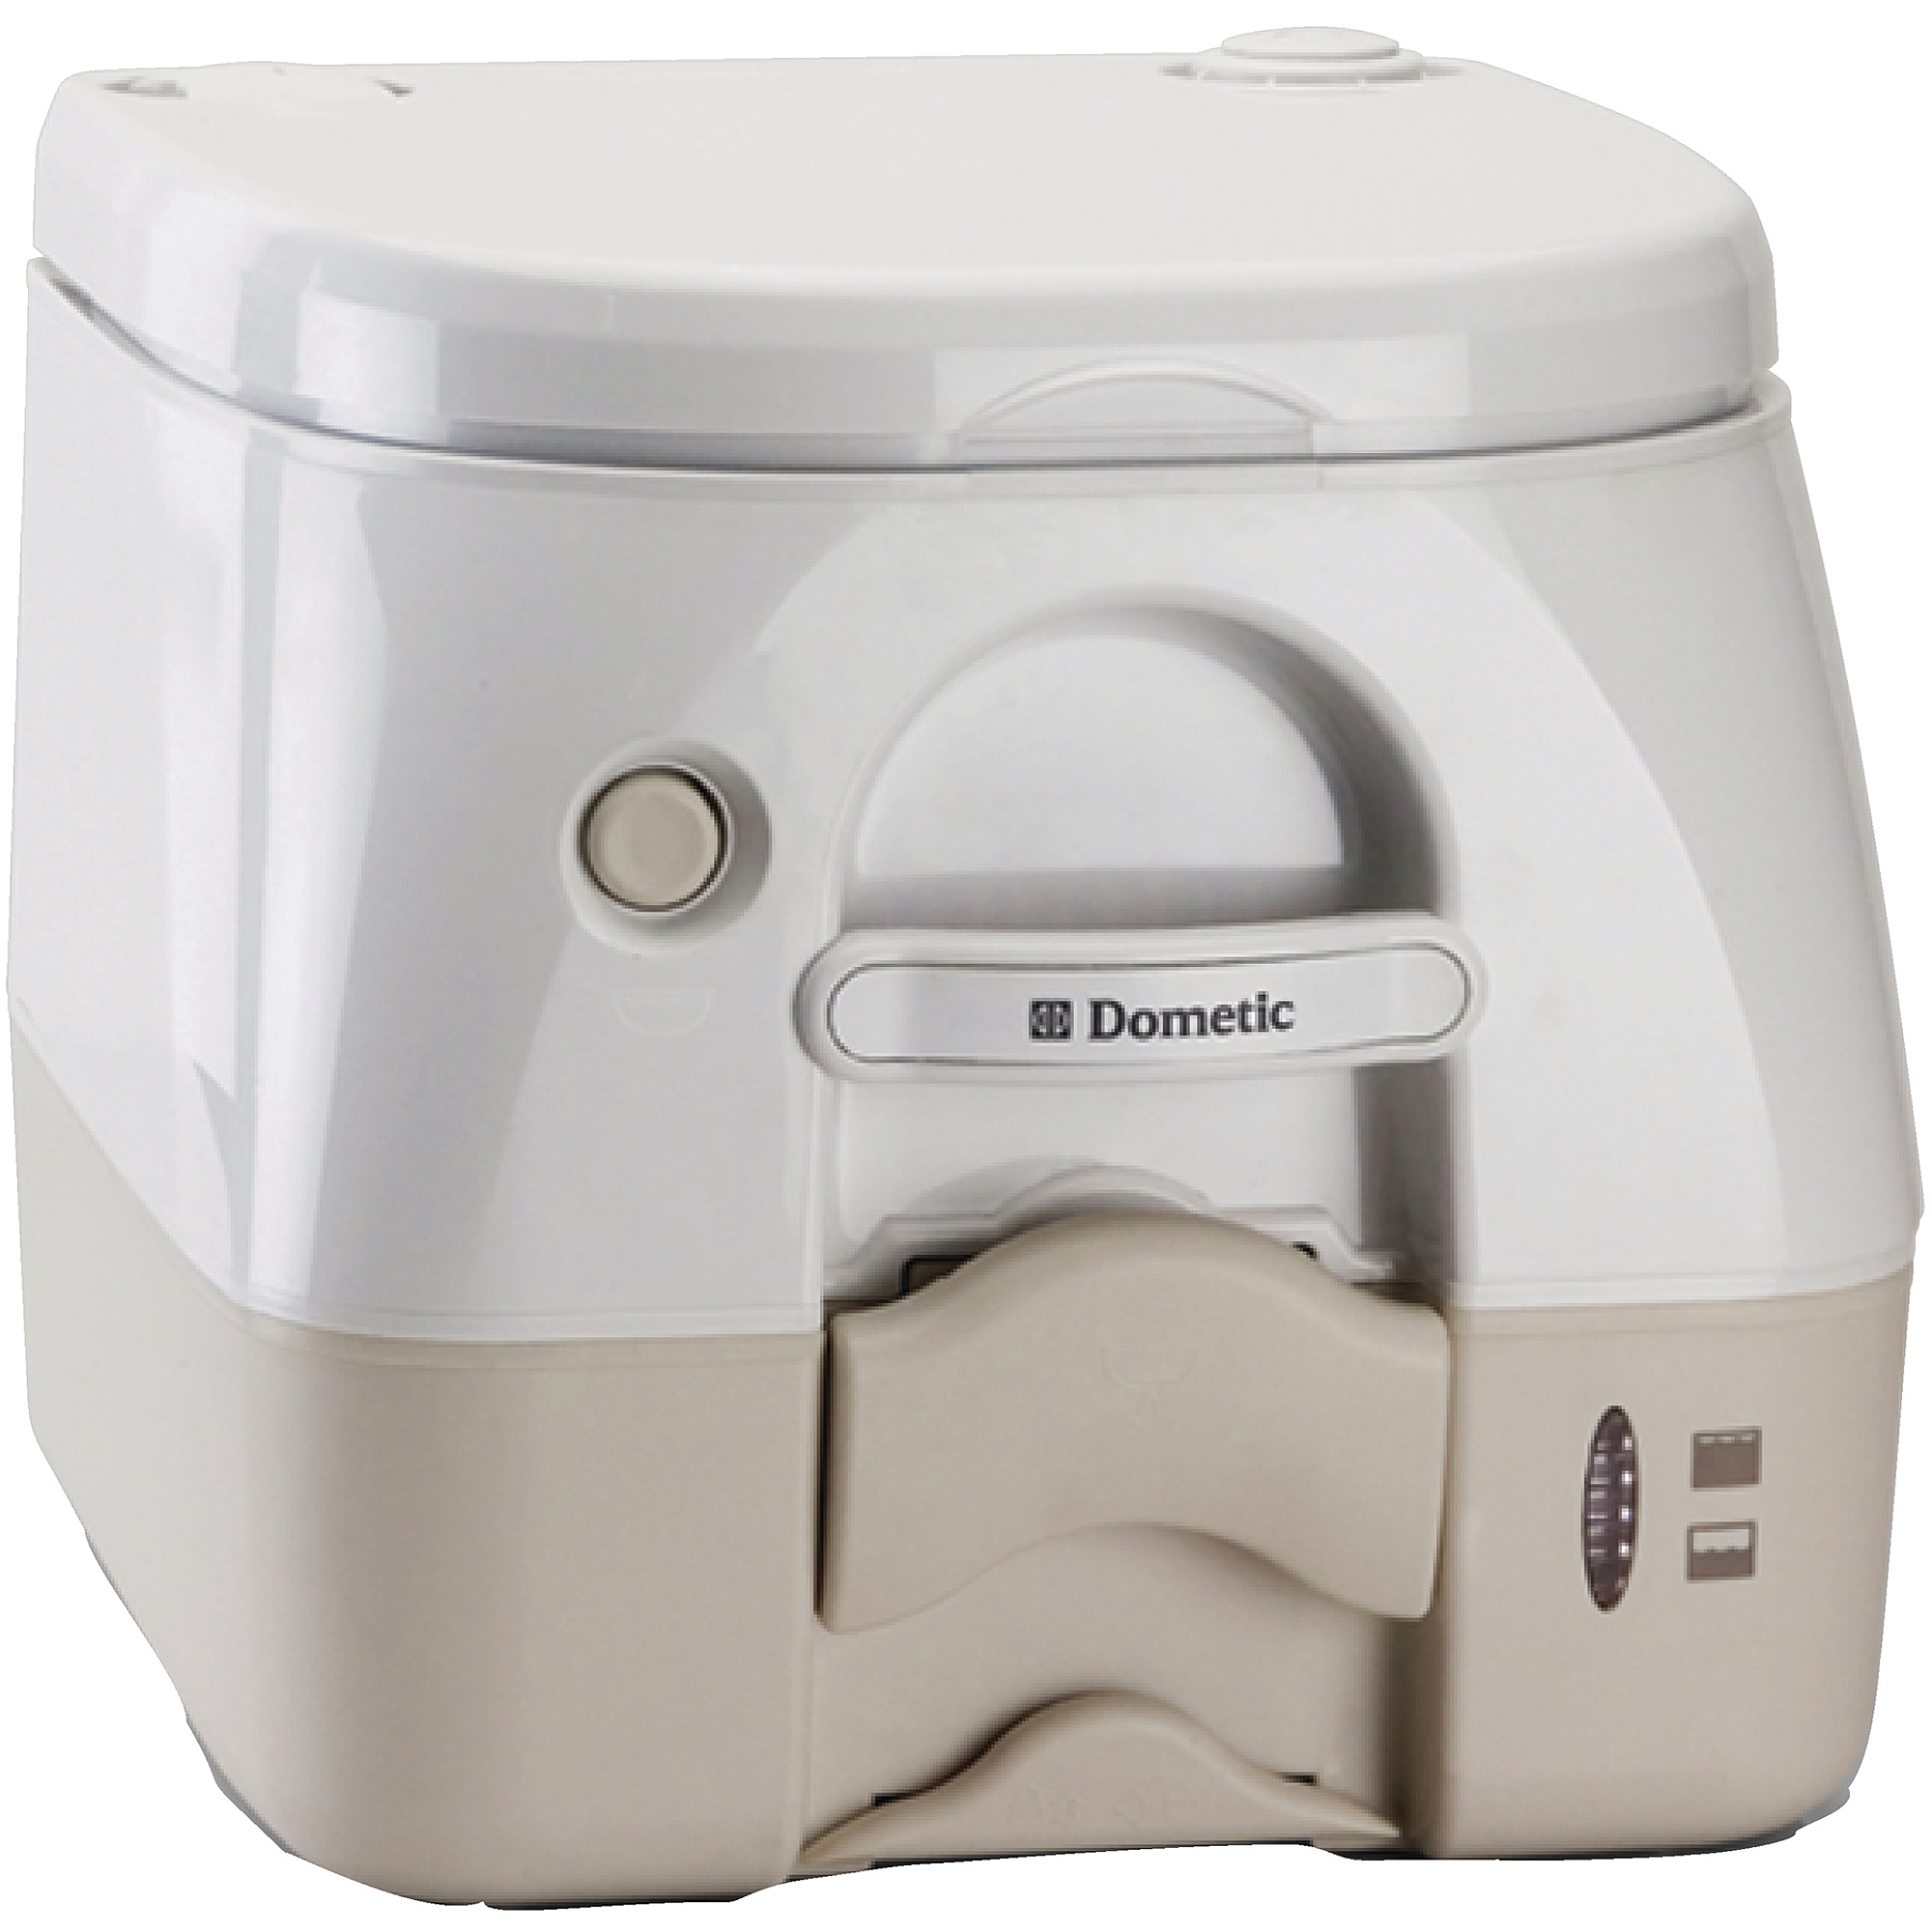 SeaLand 2.5 Gallon Full Size SaniPottie 974MSD Portable Toilet with Push Button Flush, Tan